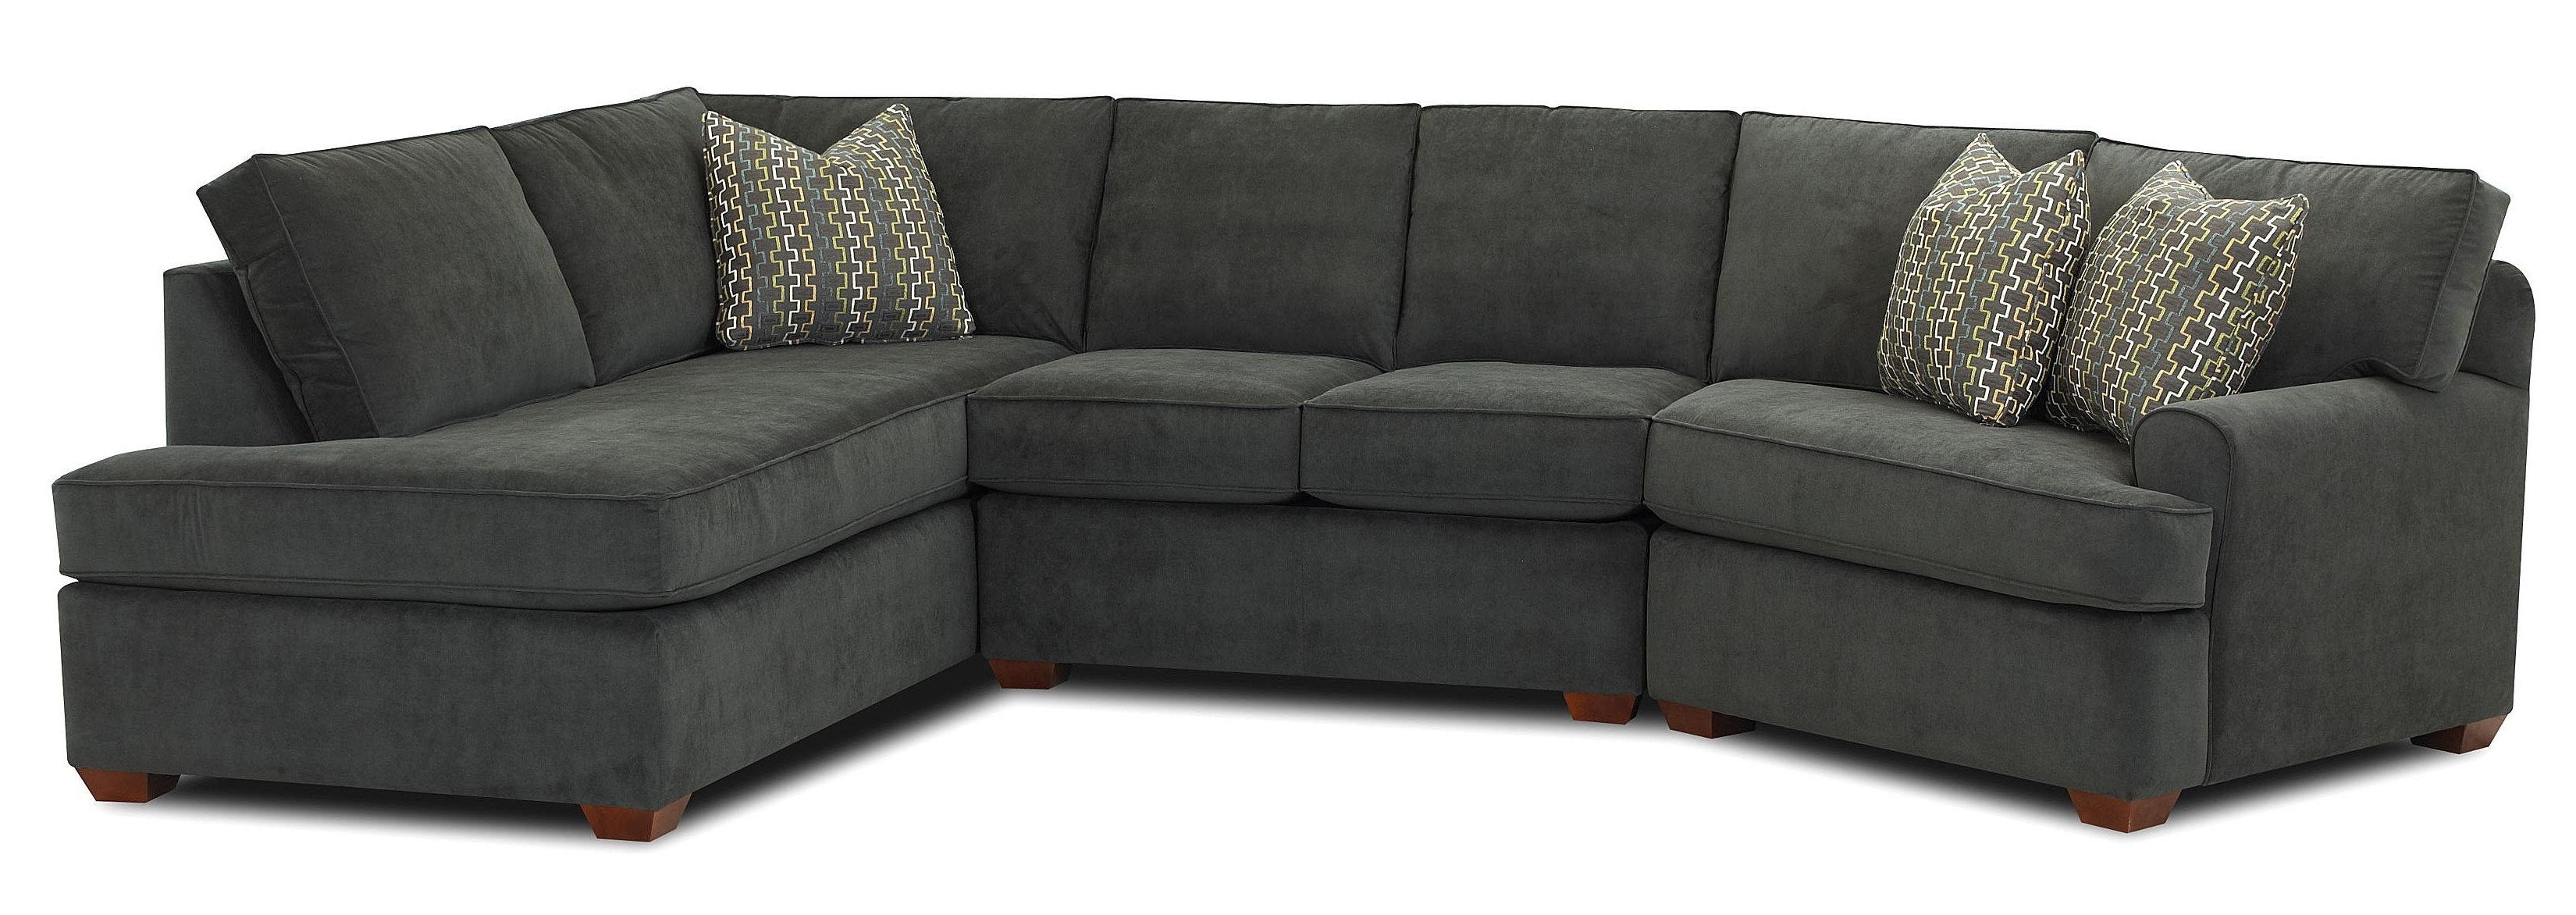 Sectional Sofa Design: Elegant Sectional Sofas Chaise Chaise Intended For Most Up To Date Grey Sofas With Chaise (View 15 of 15)